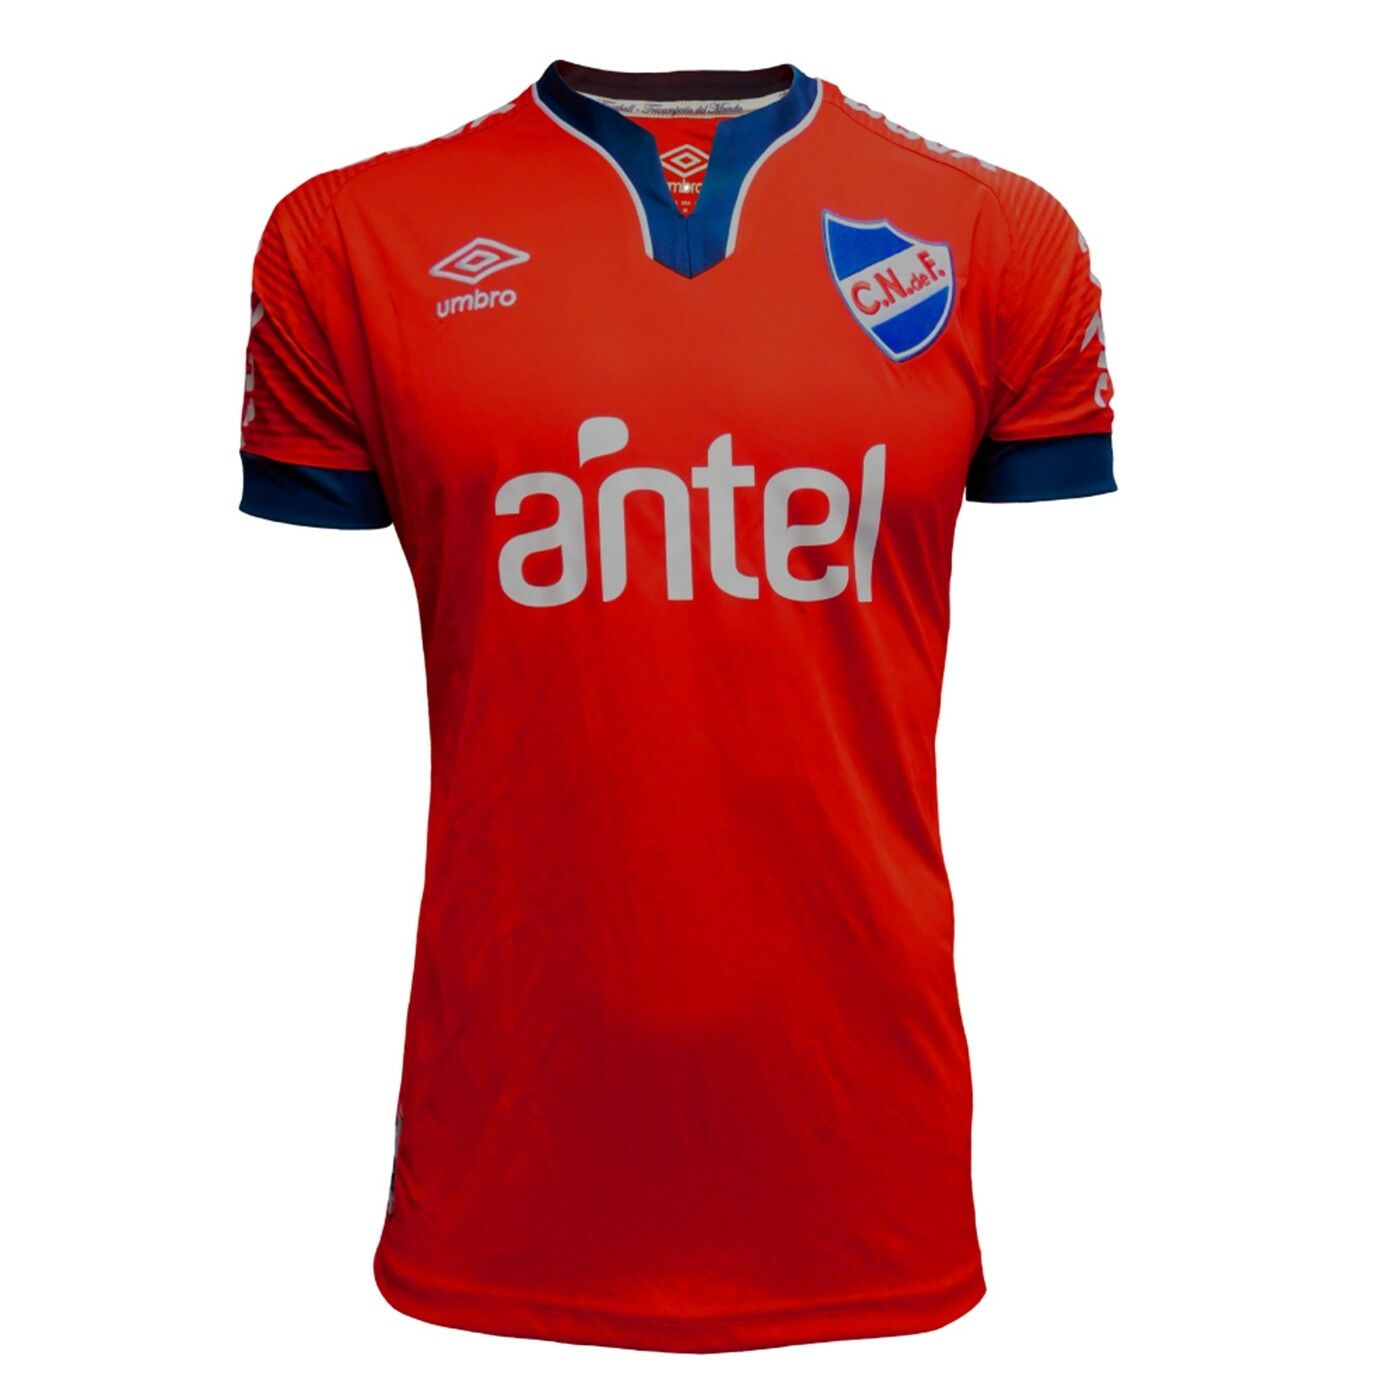 CLUB NACIONAL DE FOOTBALL  CAMISETA ROJA UMBRO 2019   rosso AWAY  URUGUAY